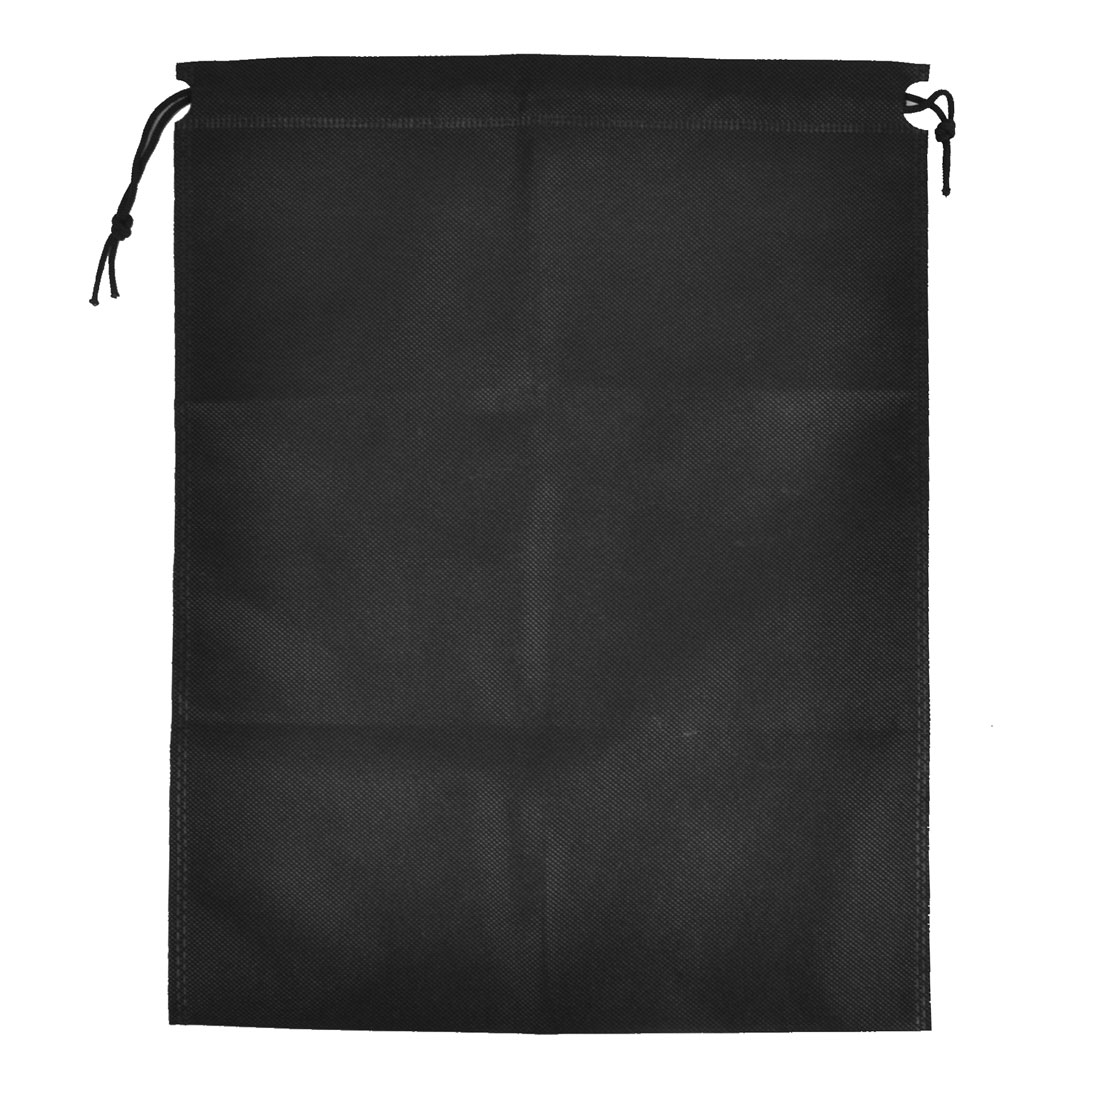 Foldable Clothing Dust Cover Storage Drawstring Bags Black 40 x 30cm